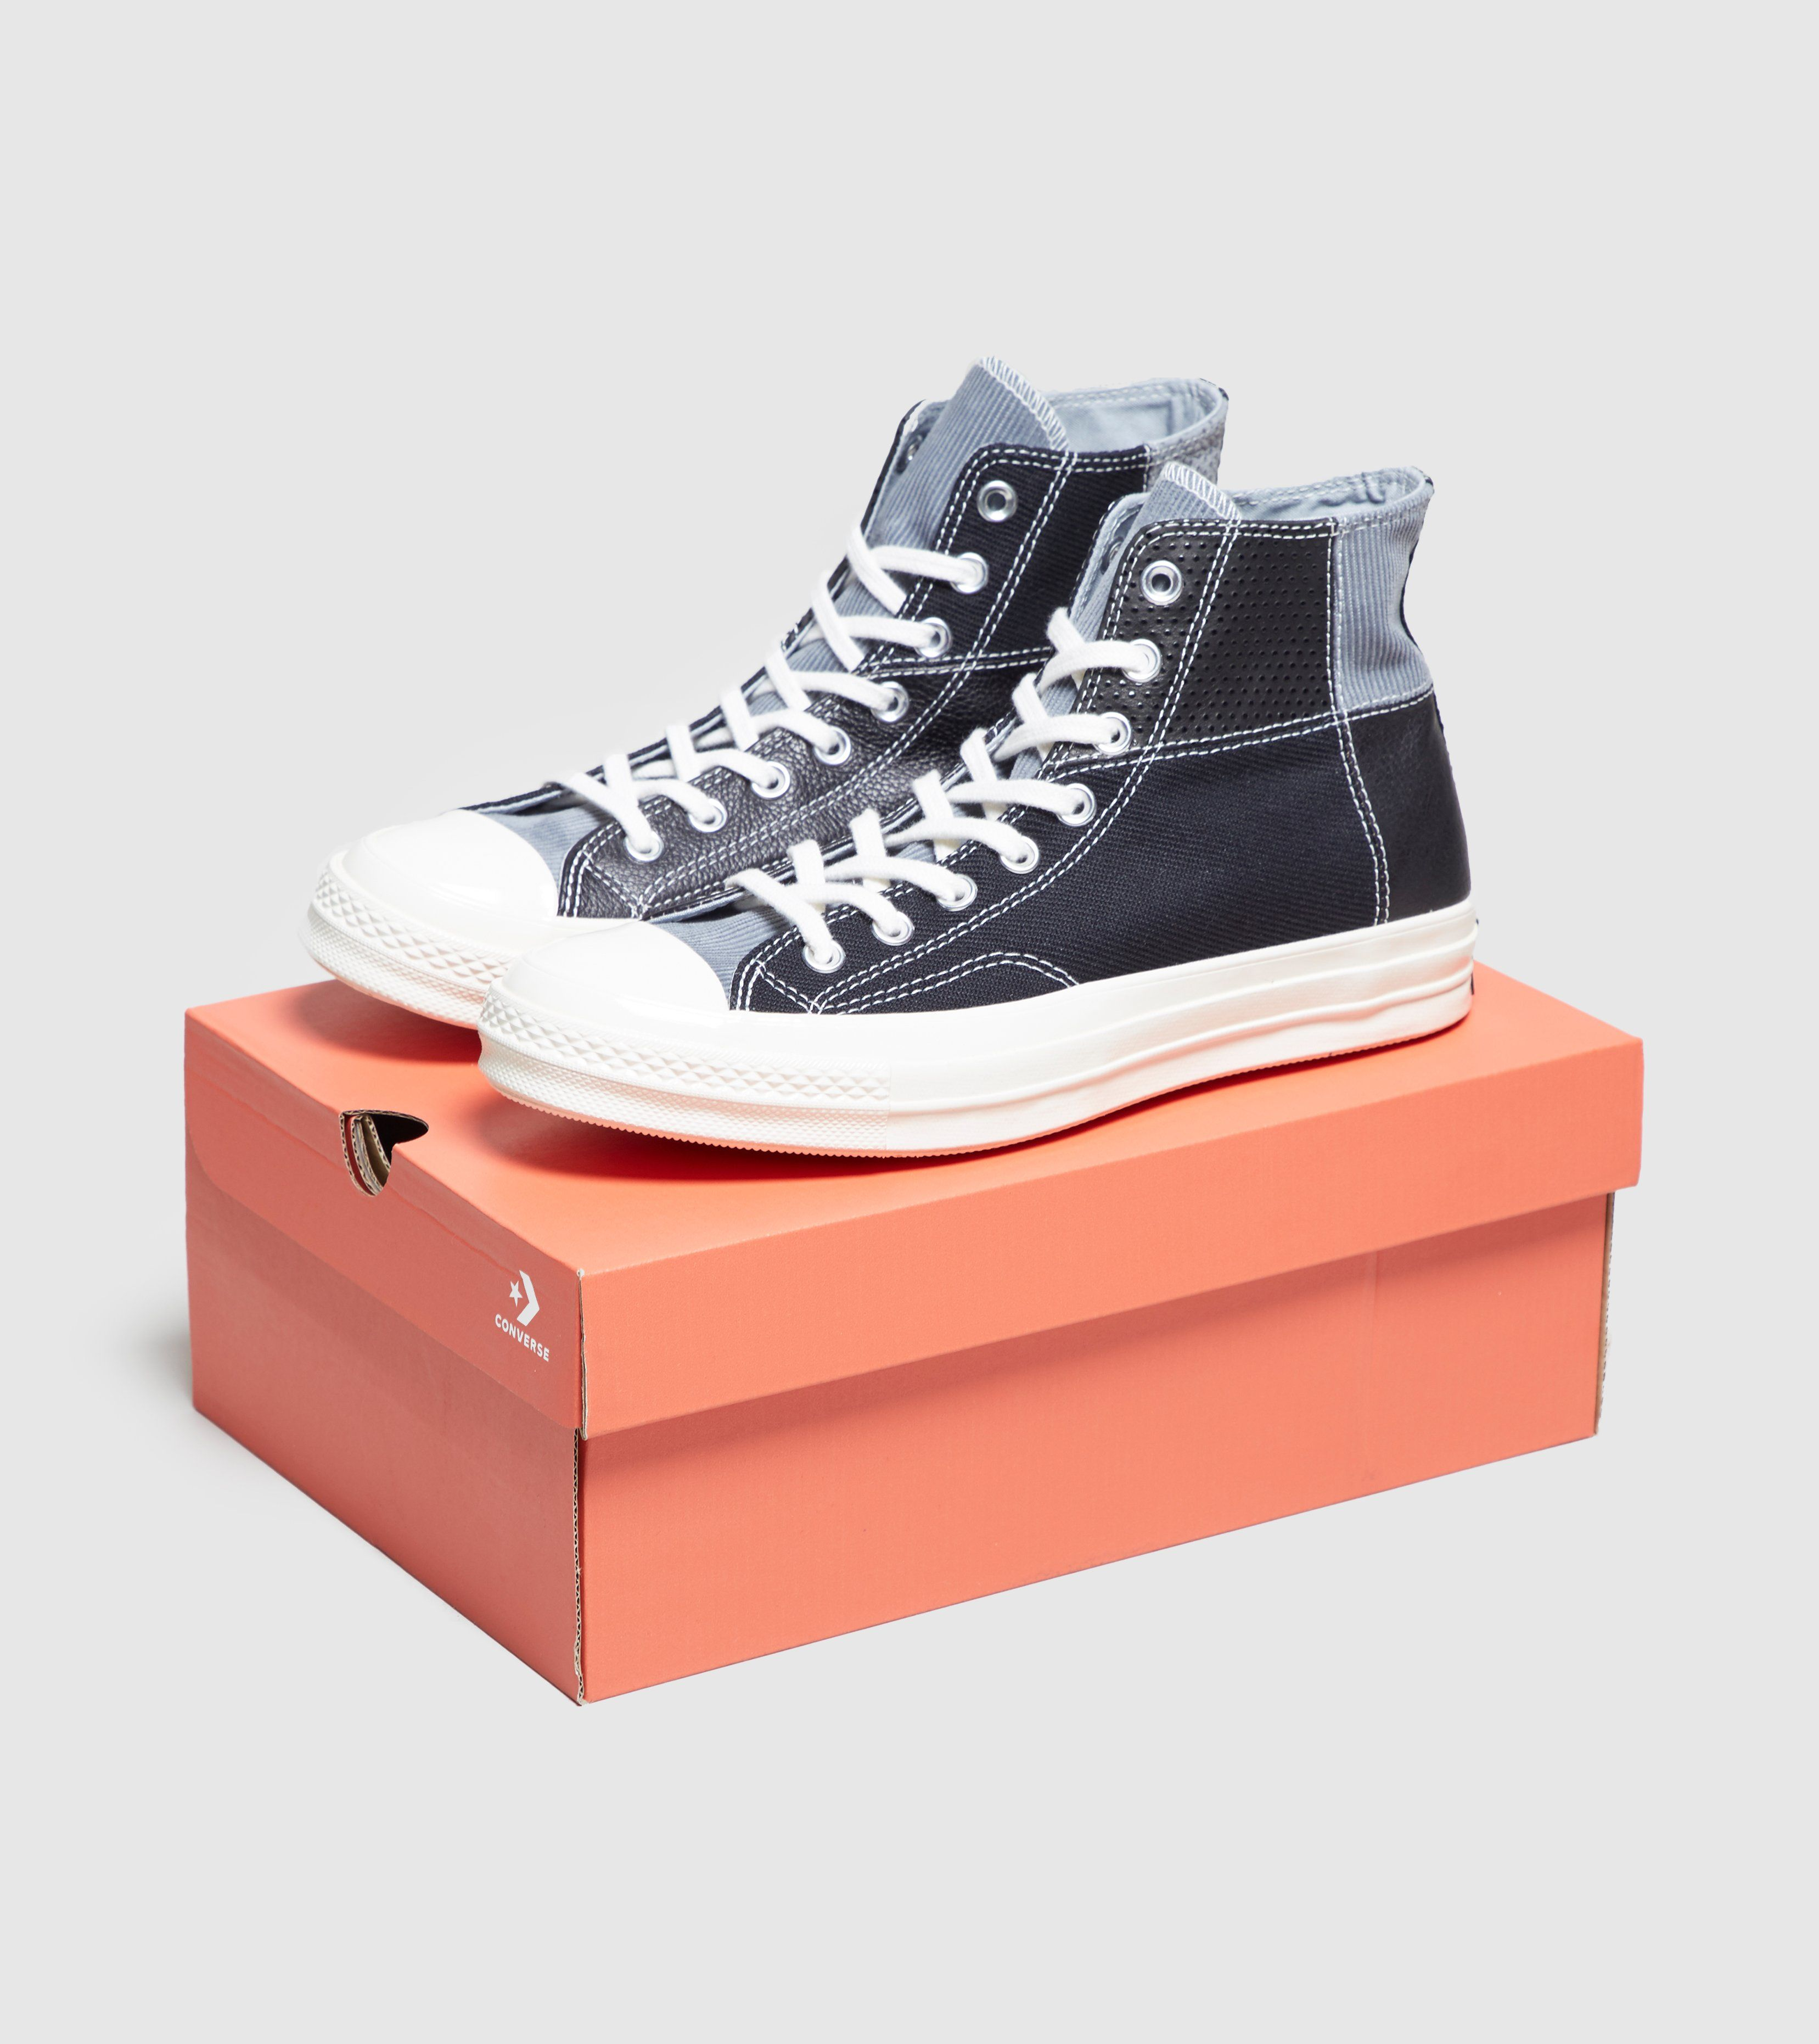 Converse Chuck Taylor All Star 70 Mixed Material